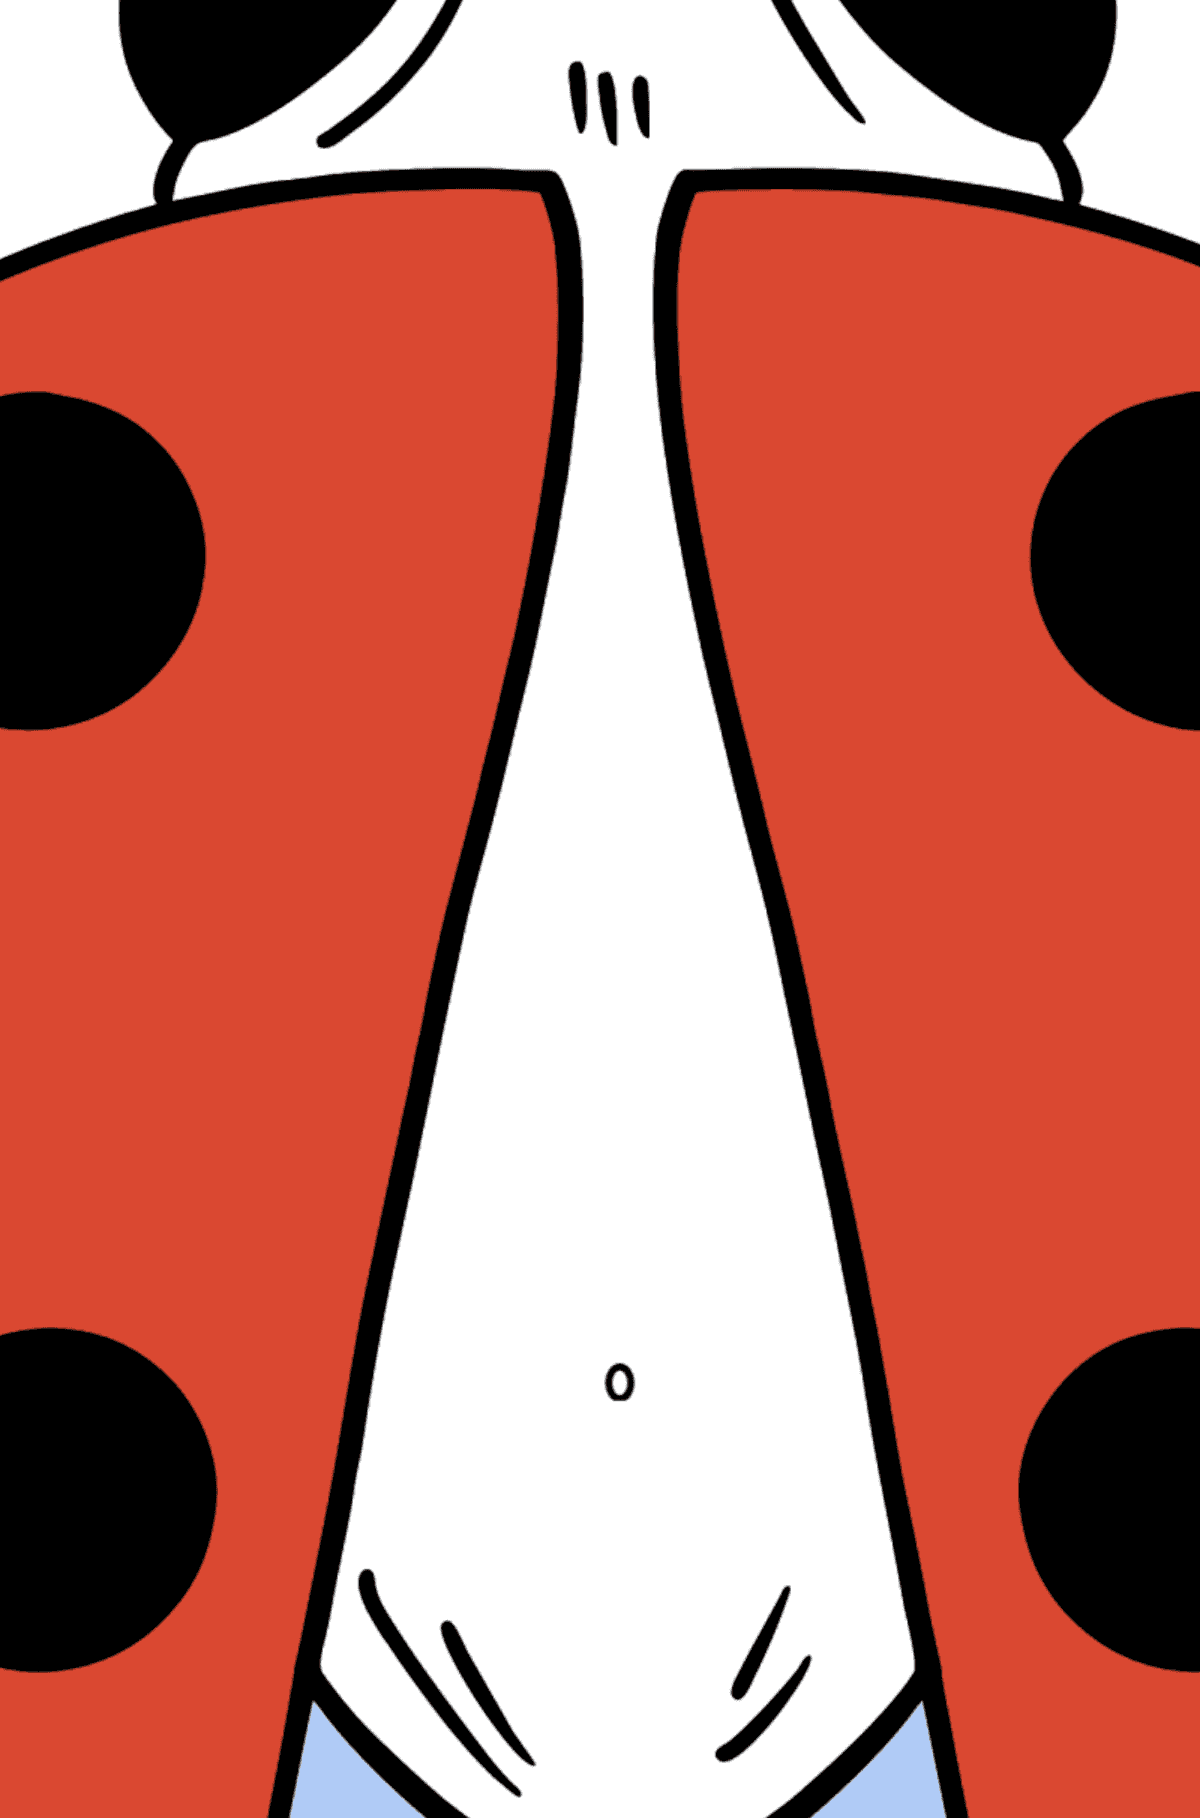 Ladybug coloring page - Coloring by Geometric Shapes for Kids